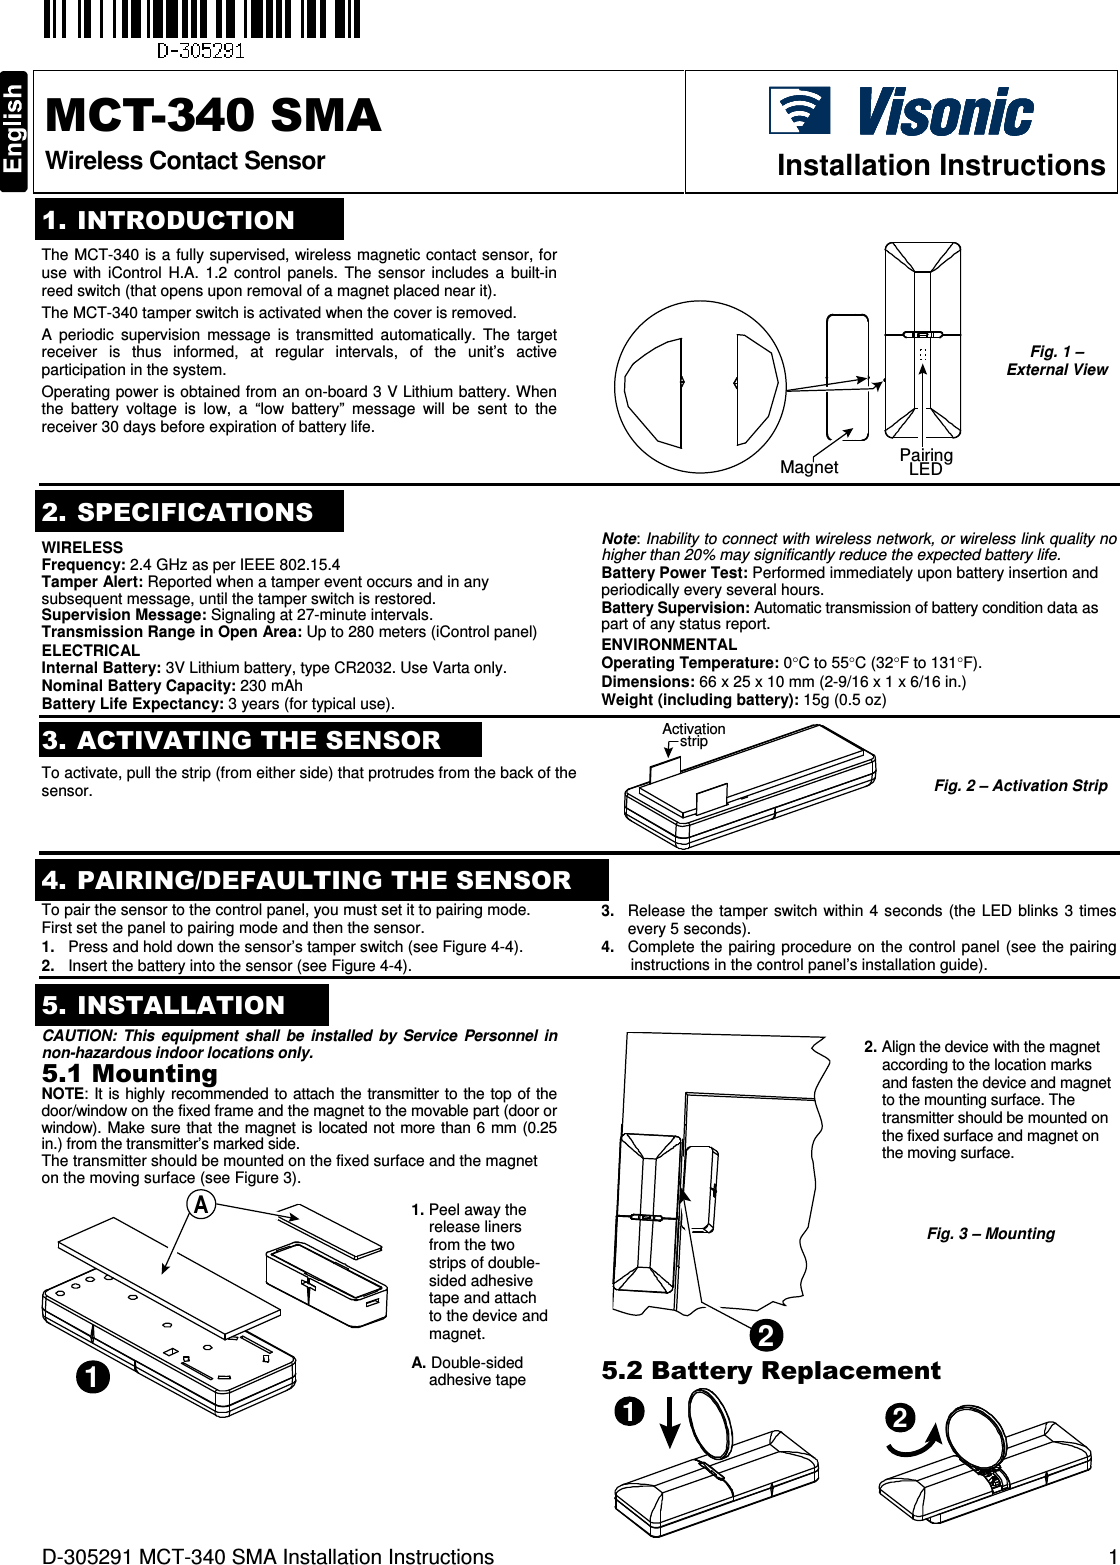 Gfci Types Gfci Testing And Hazardous Installations Manual Guide